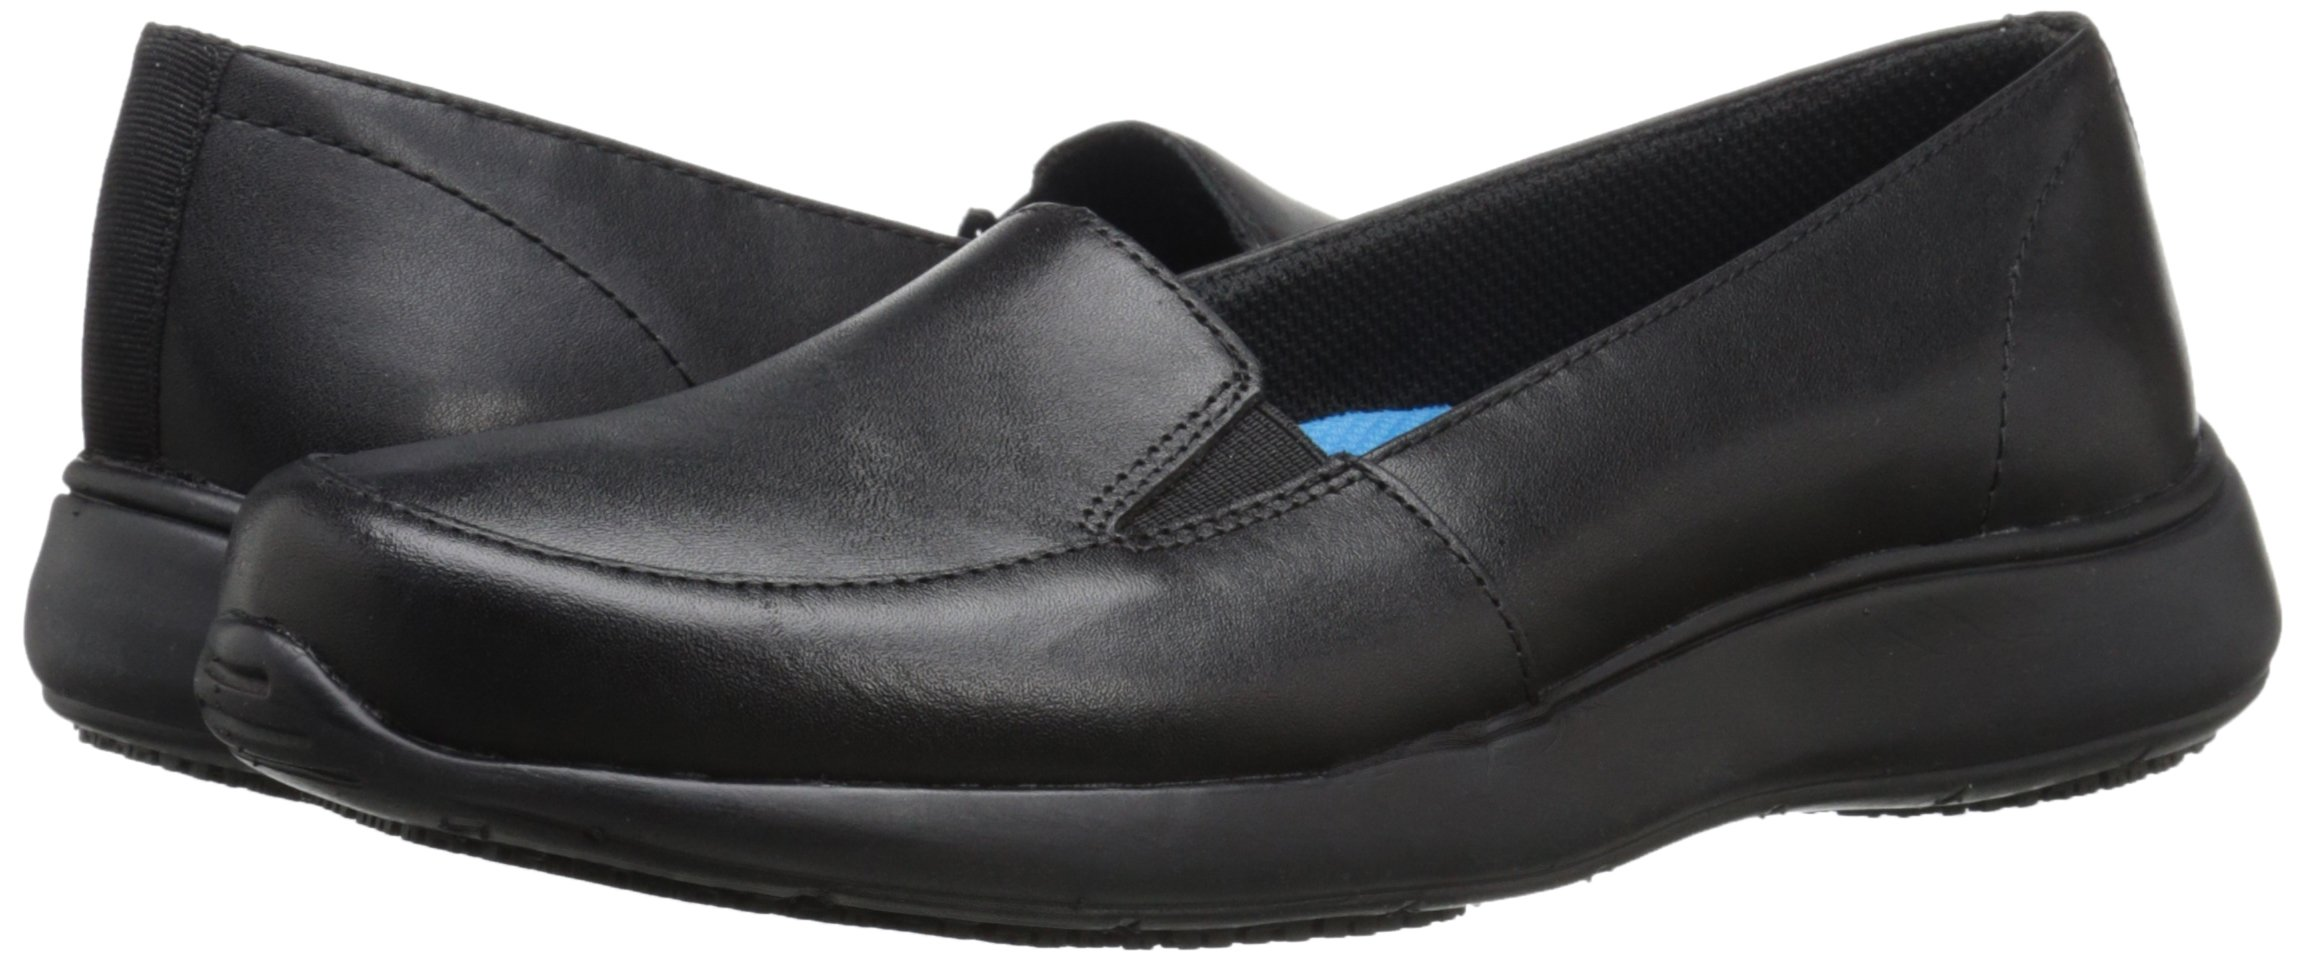 Dr. Scholl's Women's Lauri Slip On, Black, 8 M US by Dr. Scholl's Shoes (Image #6)